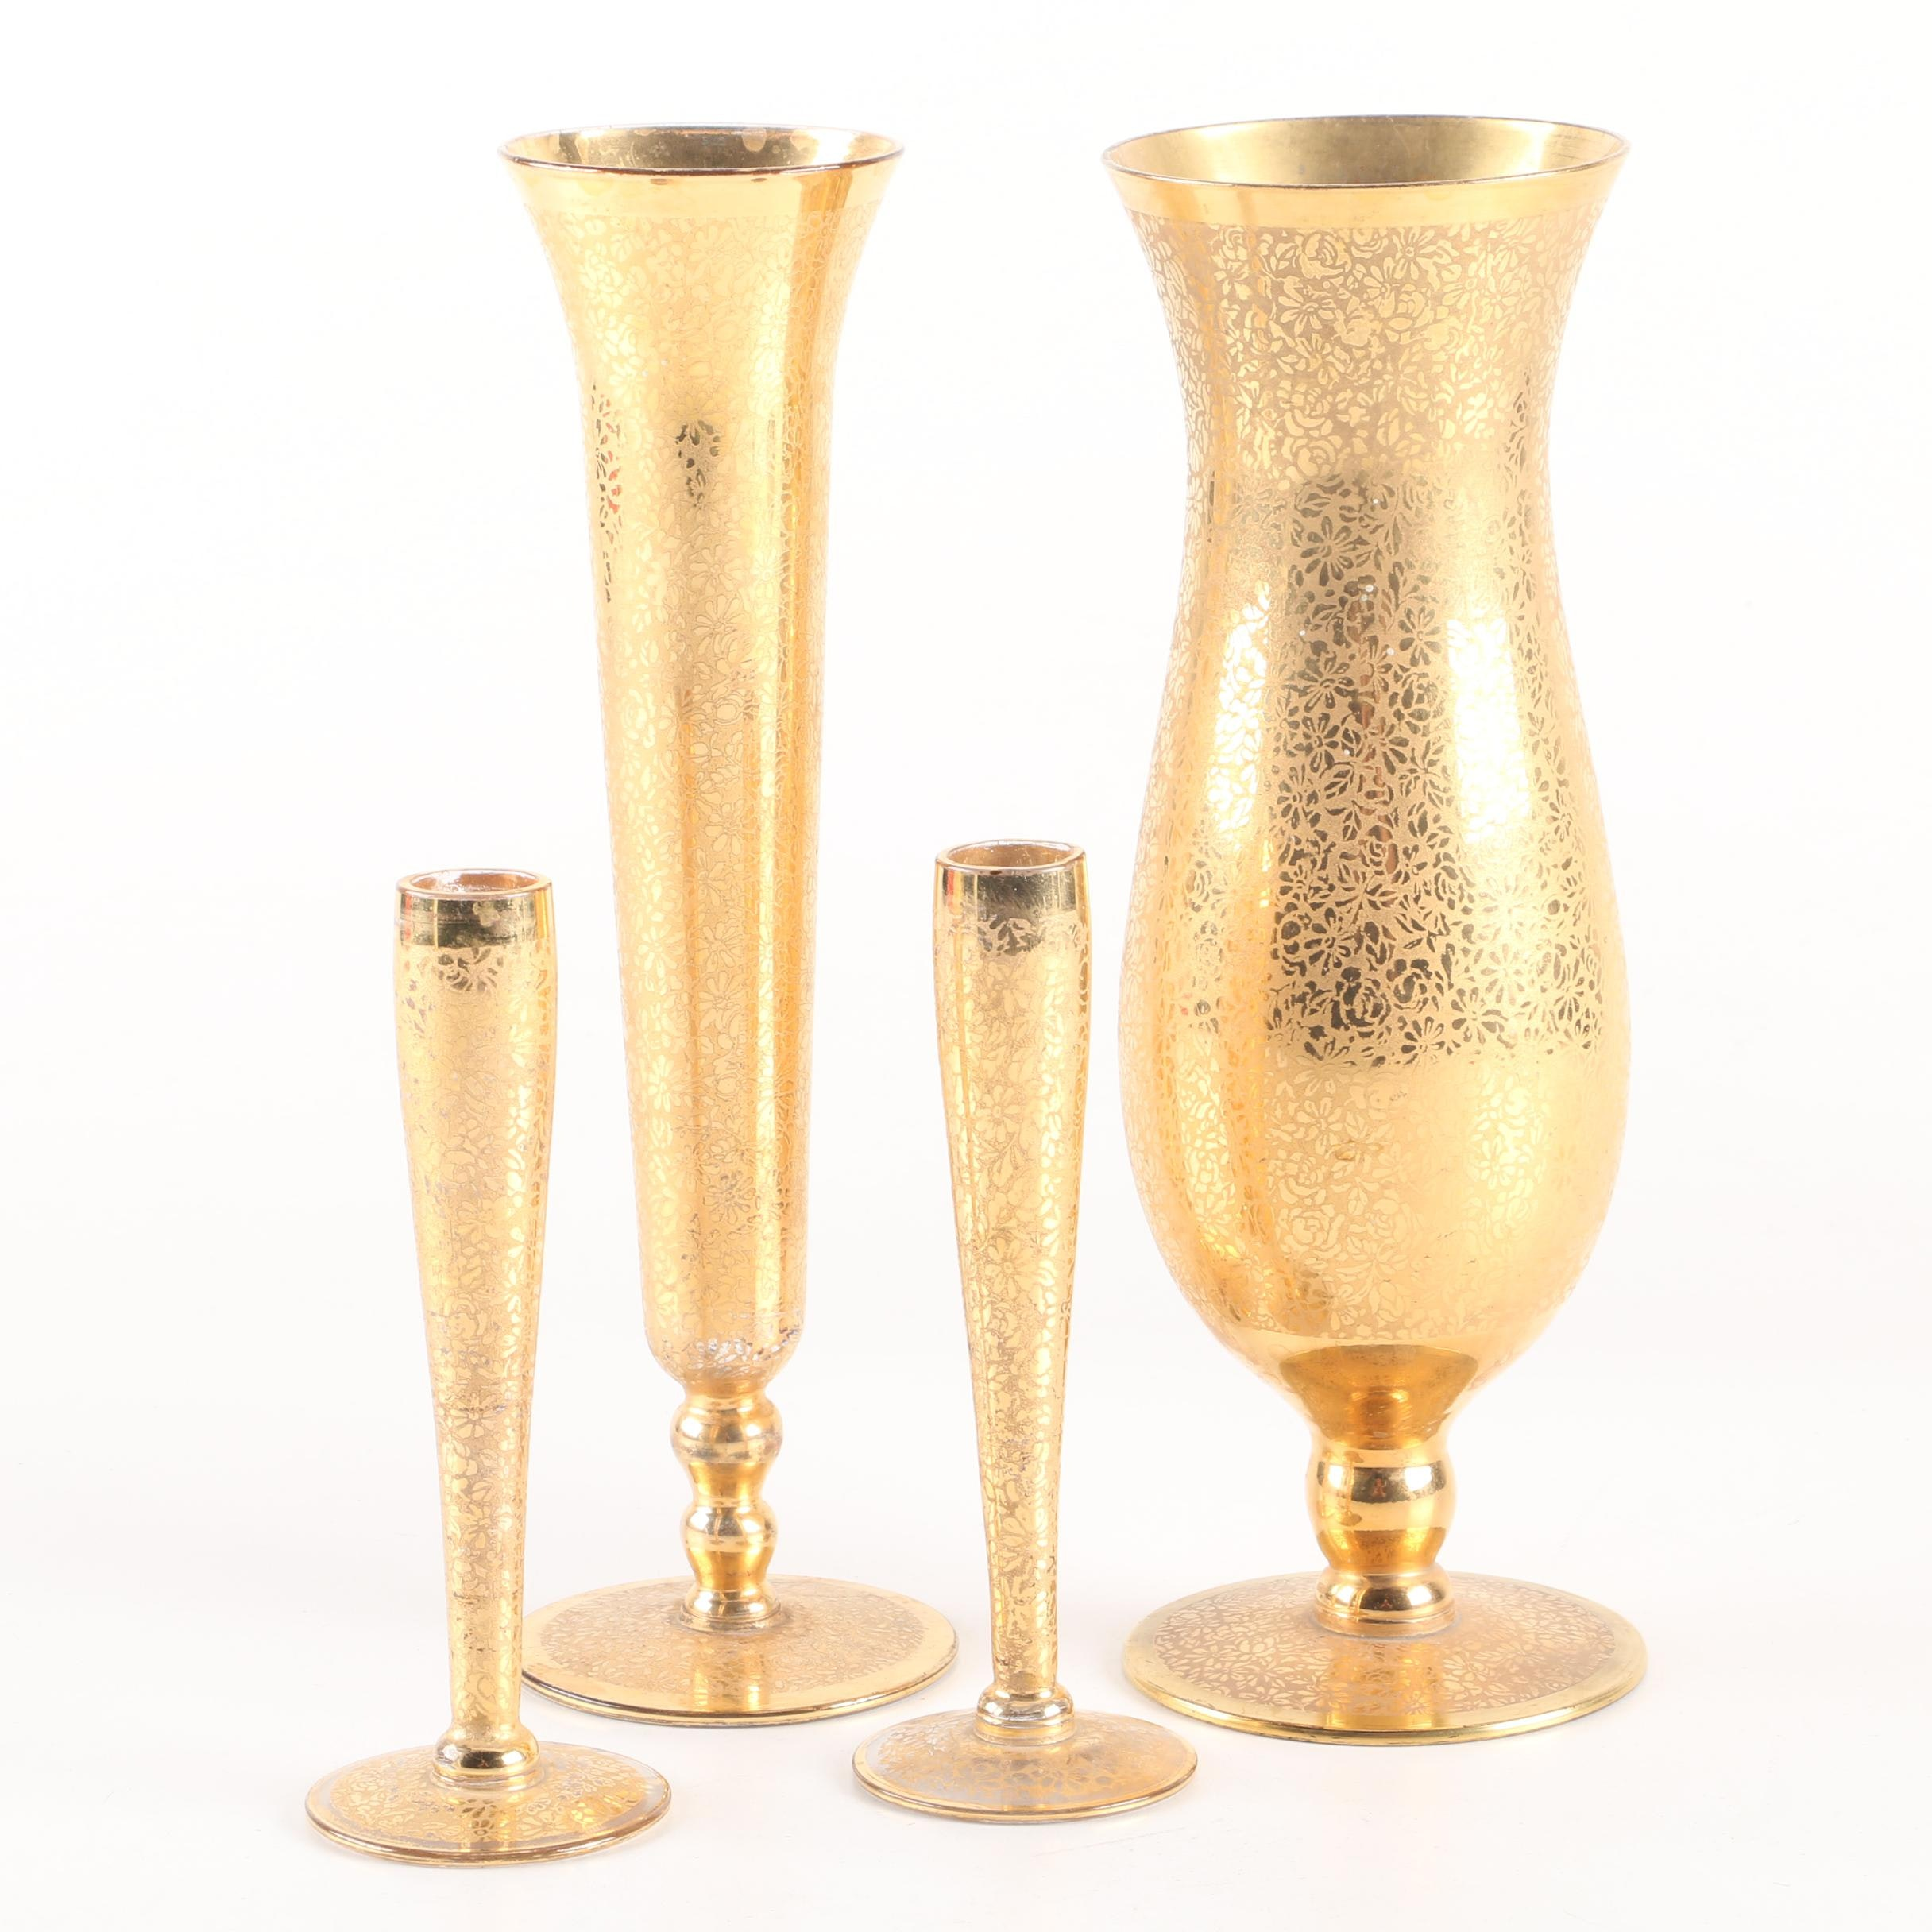 Vintage Gold Encrusted Crystal Candlestick Holders and Vases by RansGil